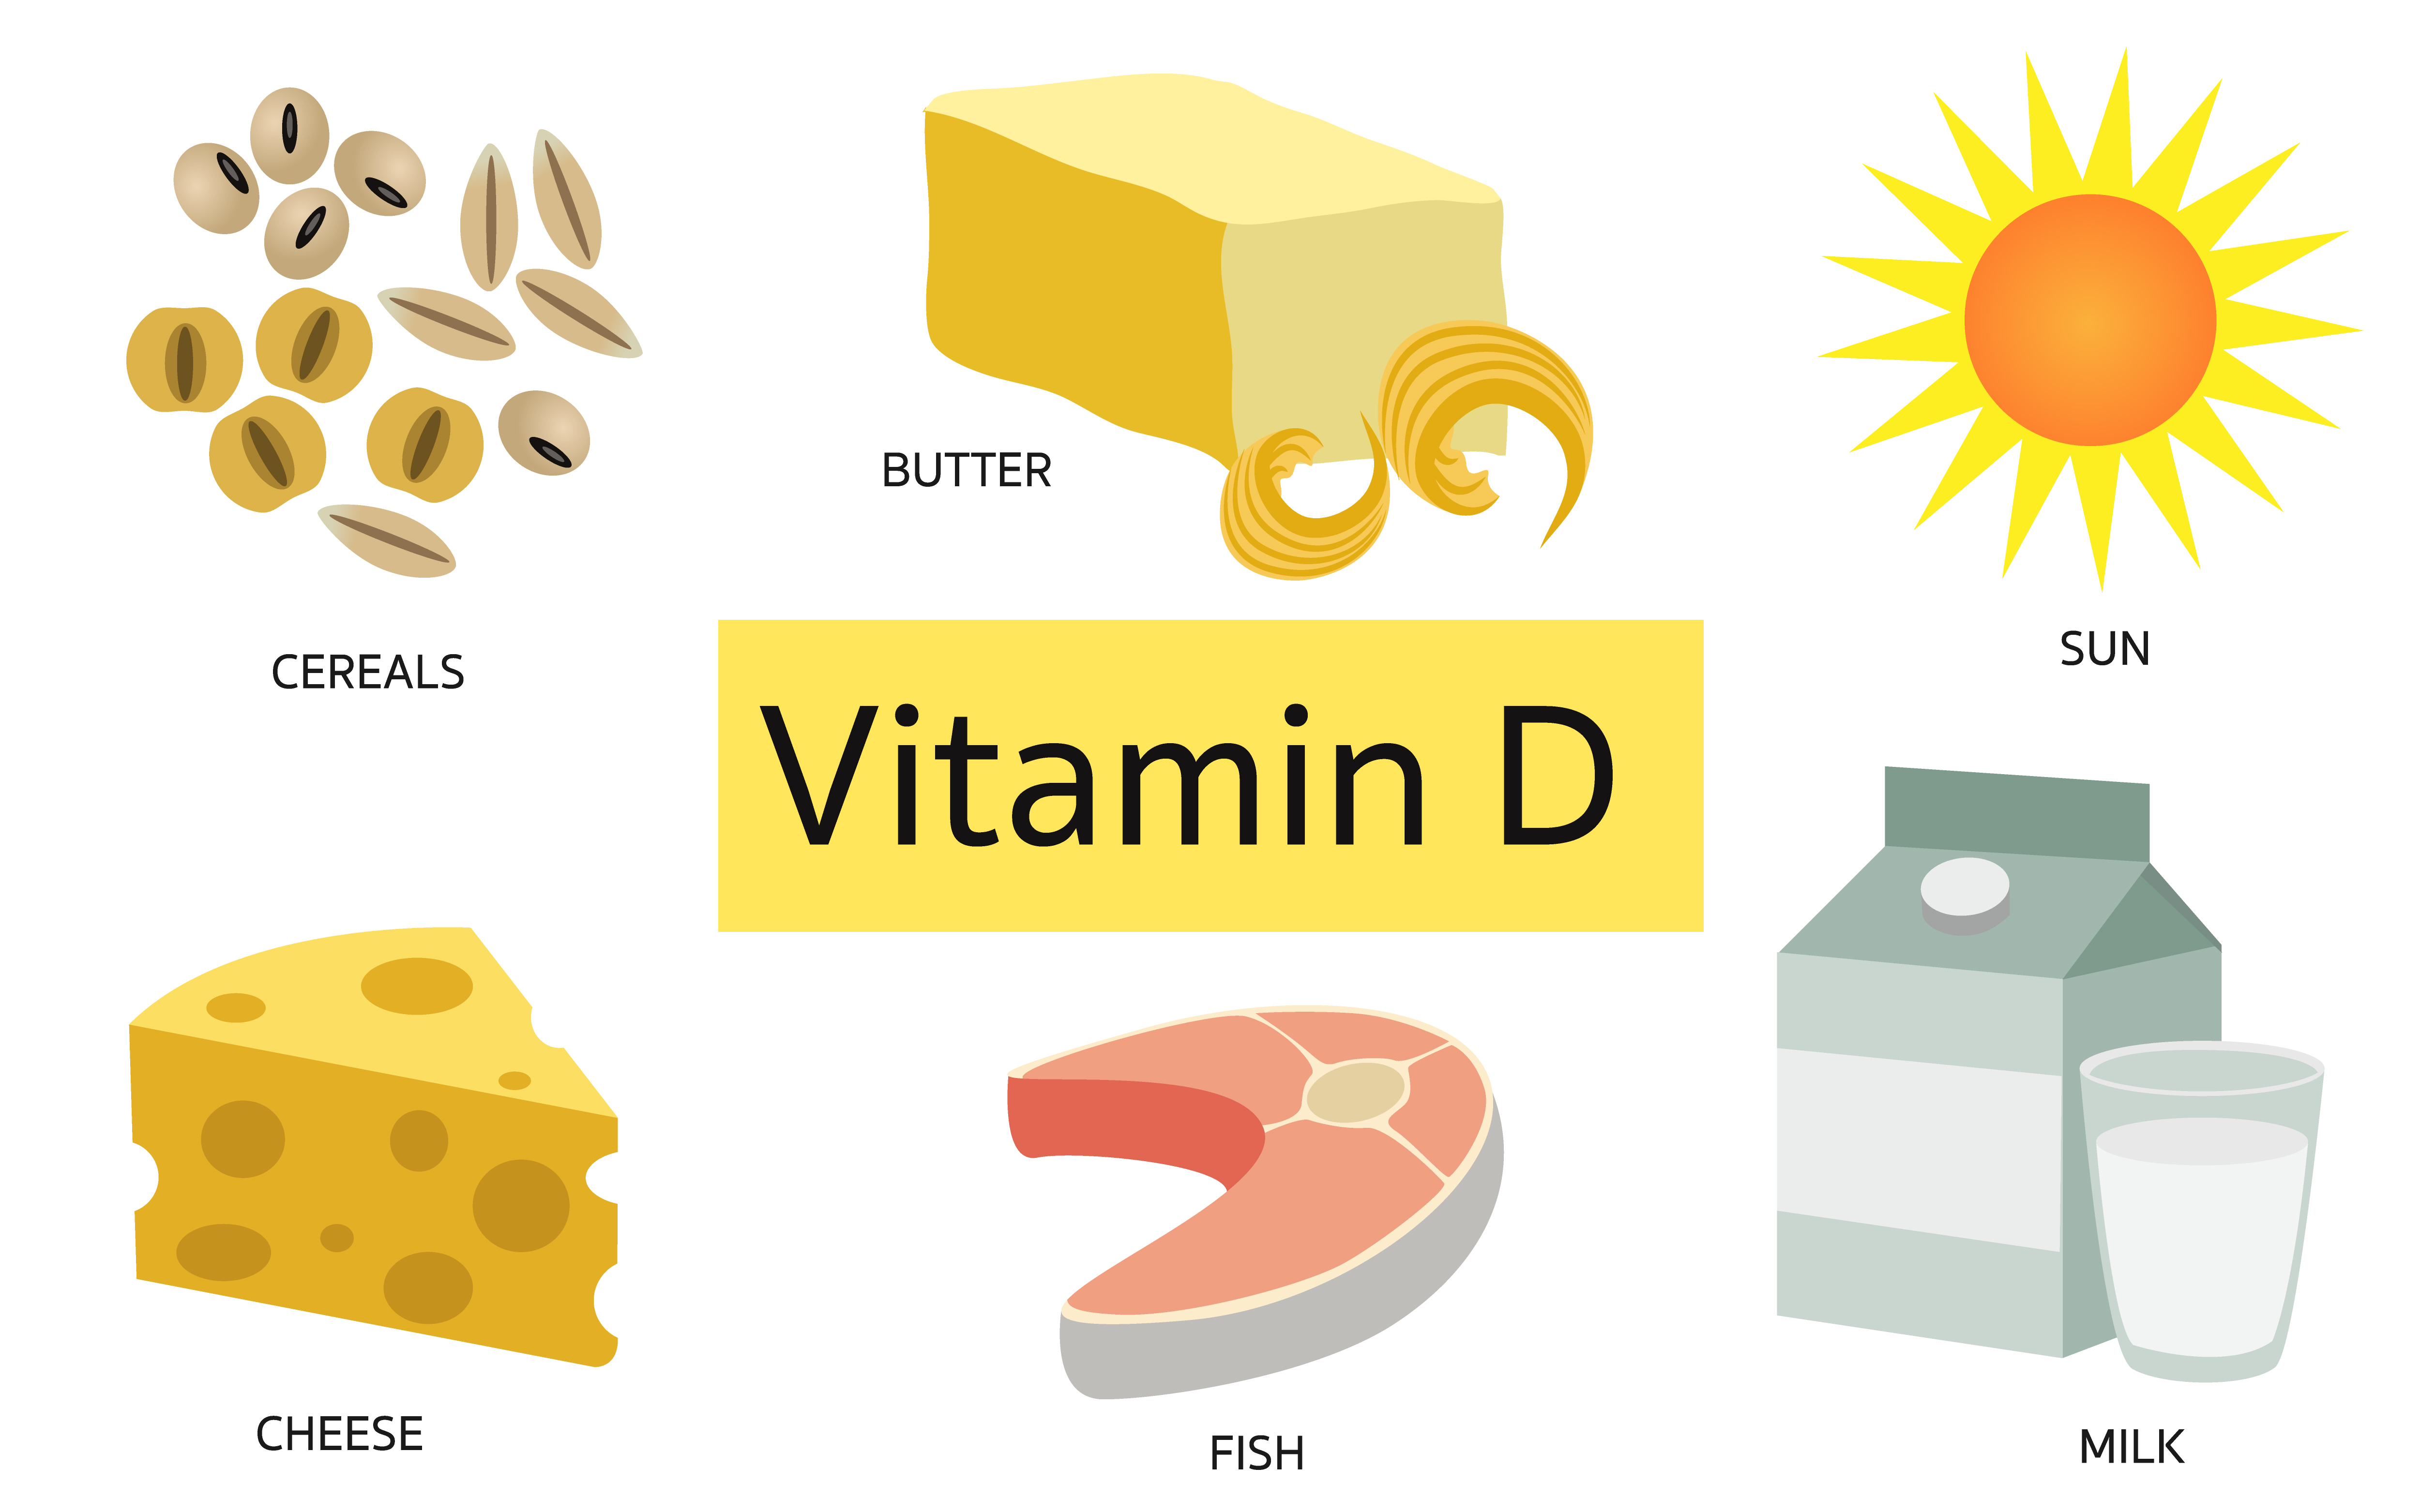 The most common sources of Vitamin D